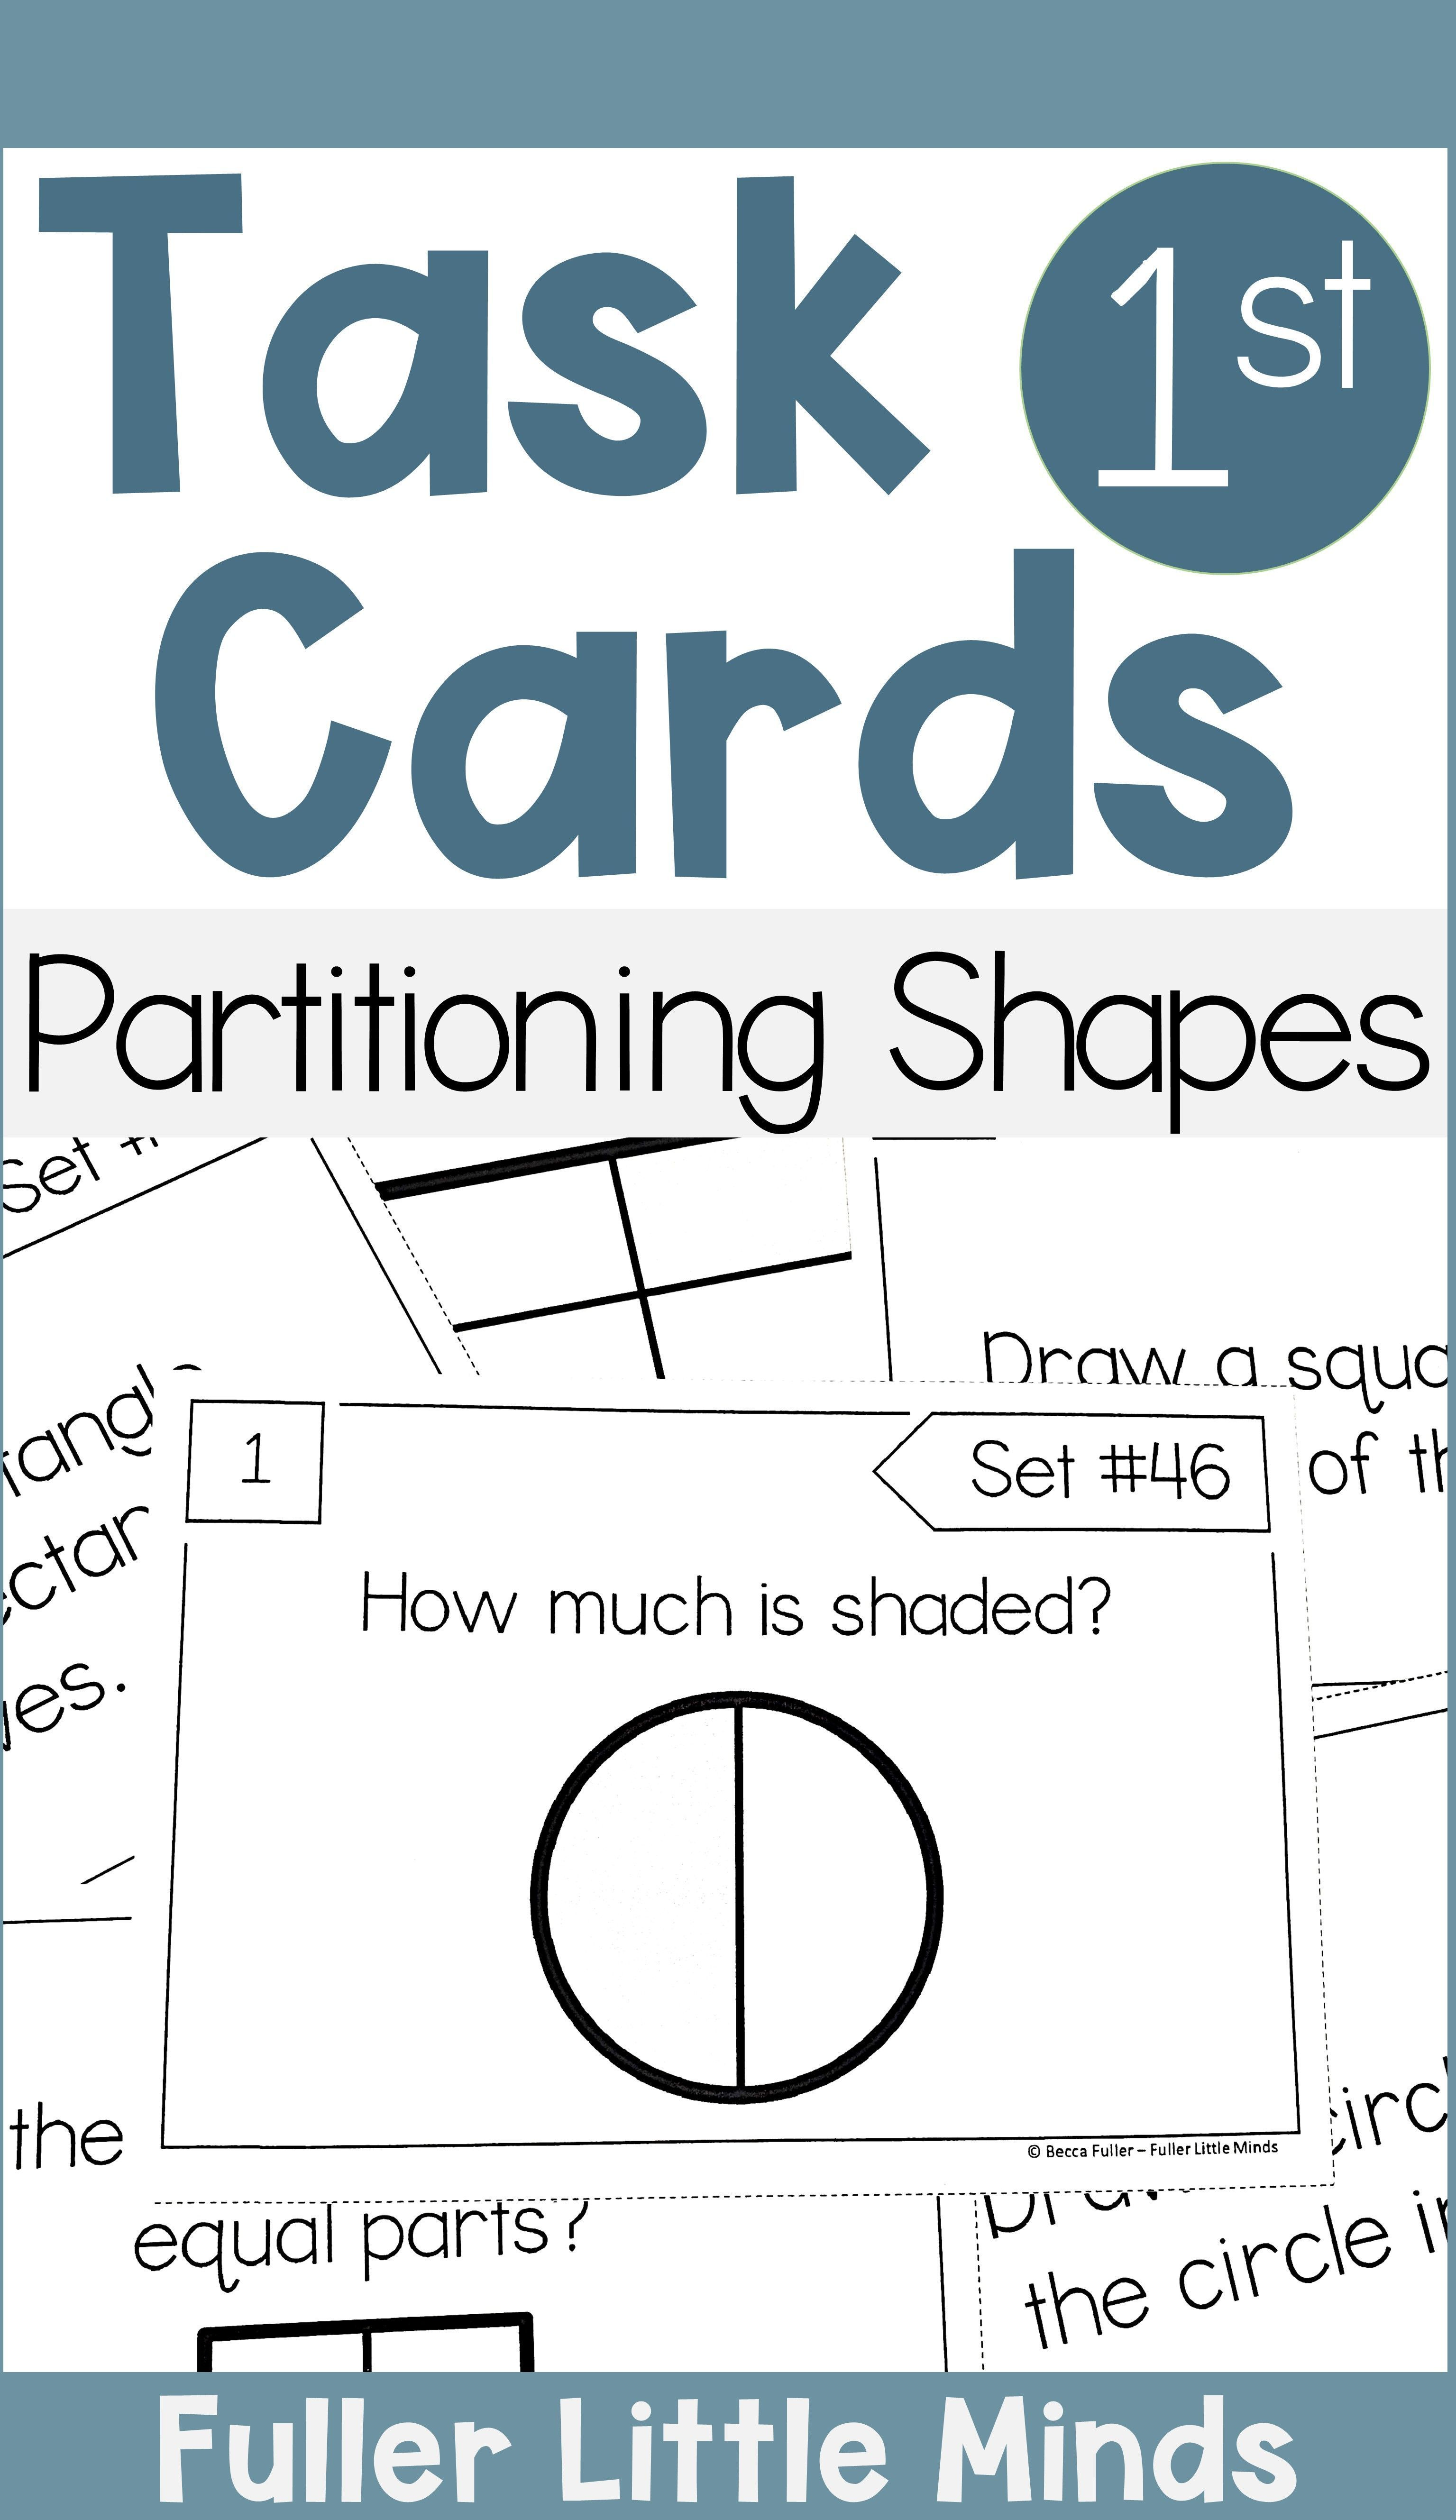 Partitioning Shapes 1st Grade Math Task Cards In 2020 1st Grade Math Math Task Cards Math Tasks